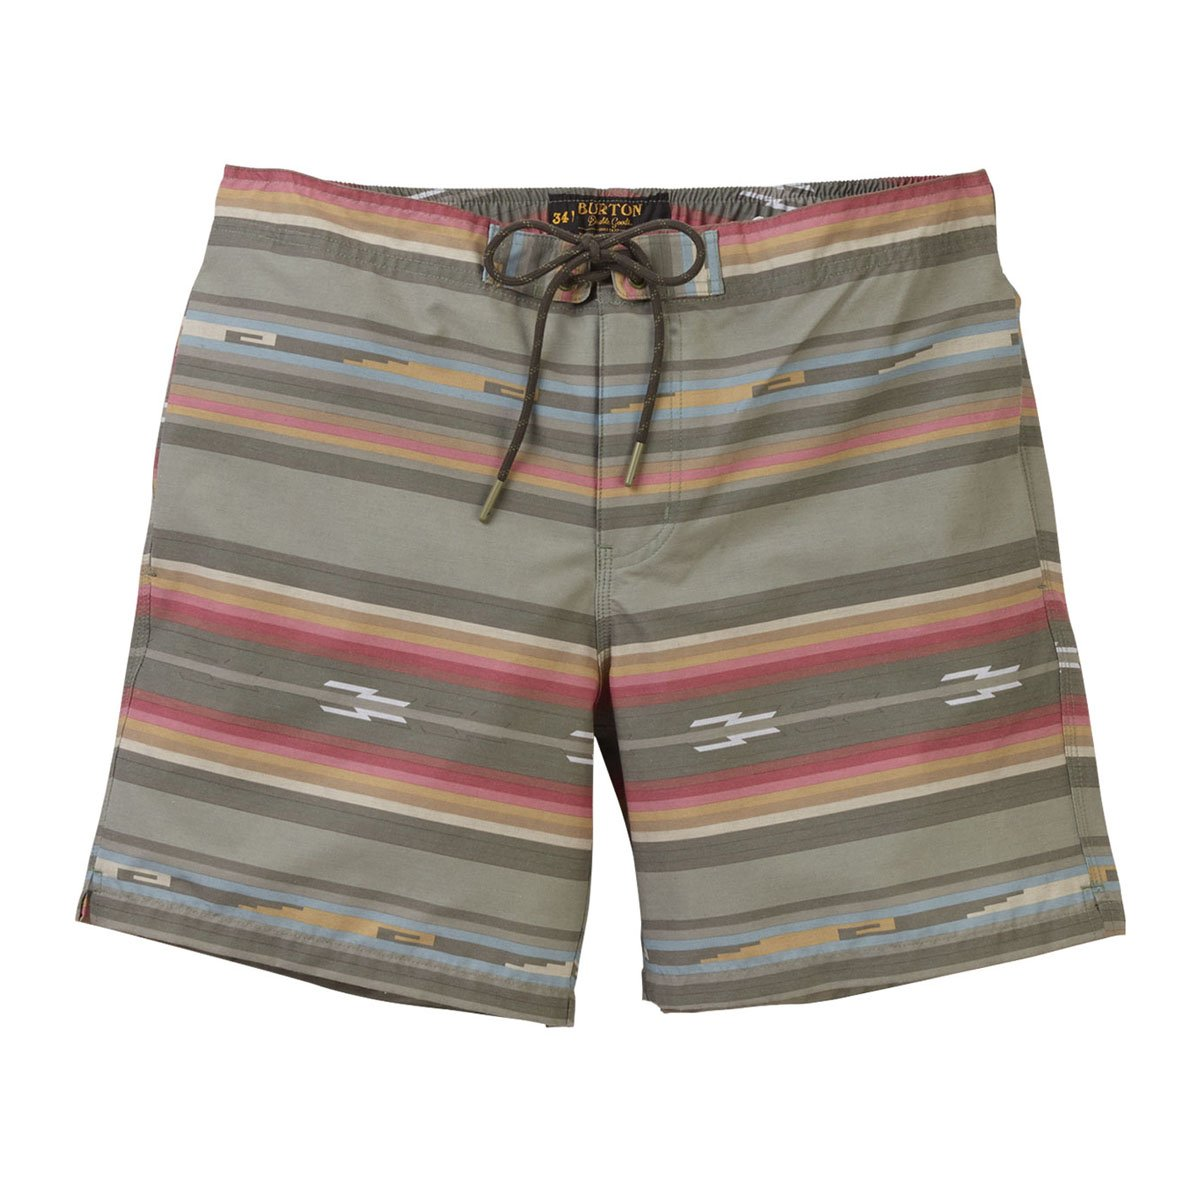 MB CREEKSIDE SHORT